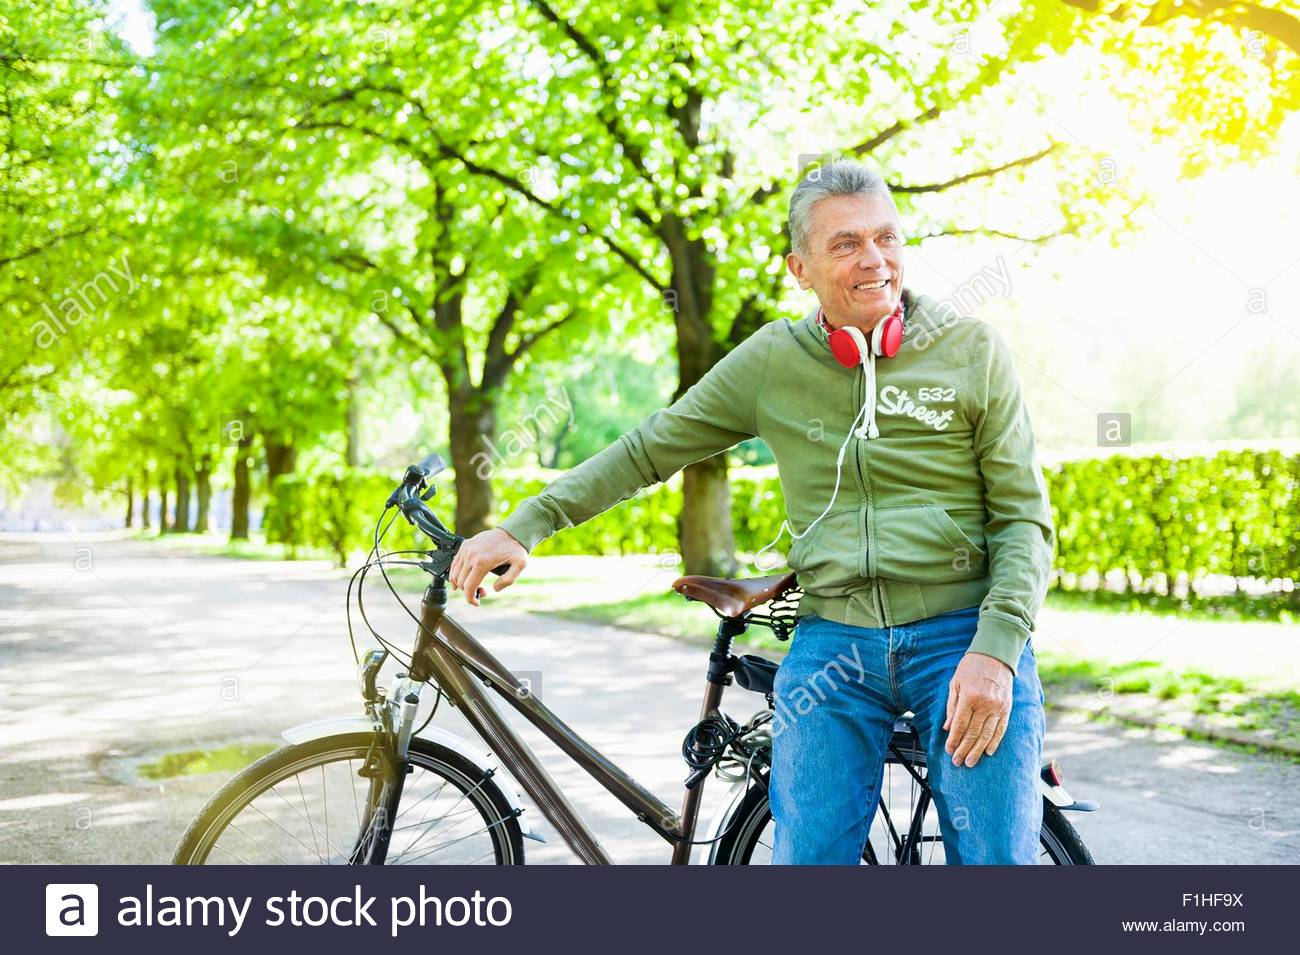 Senior man leaning against bicycle, looking away - Stock Image